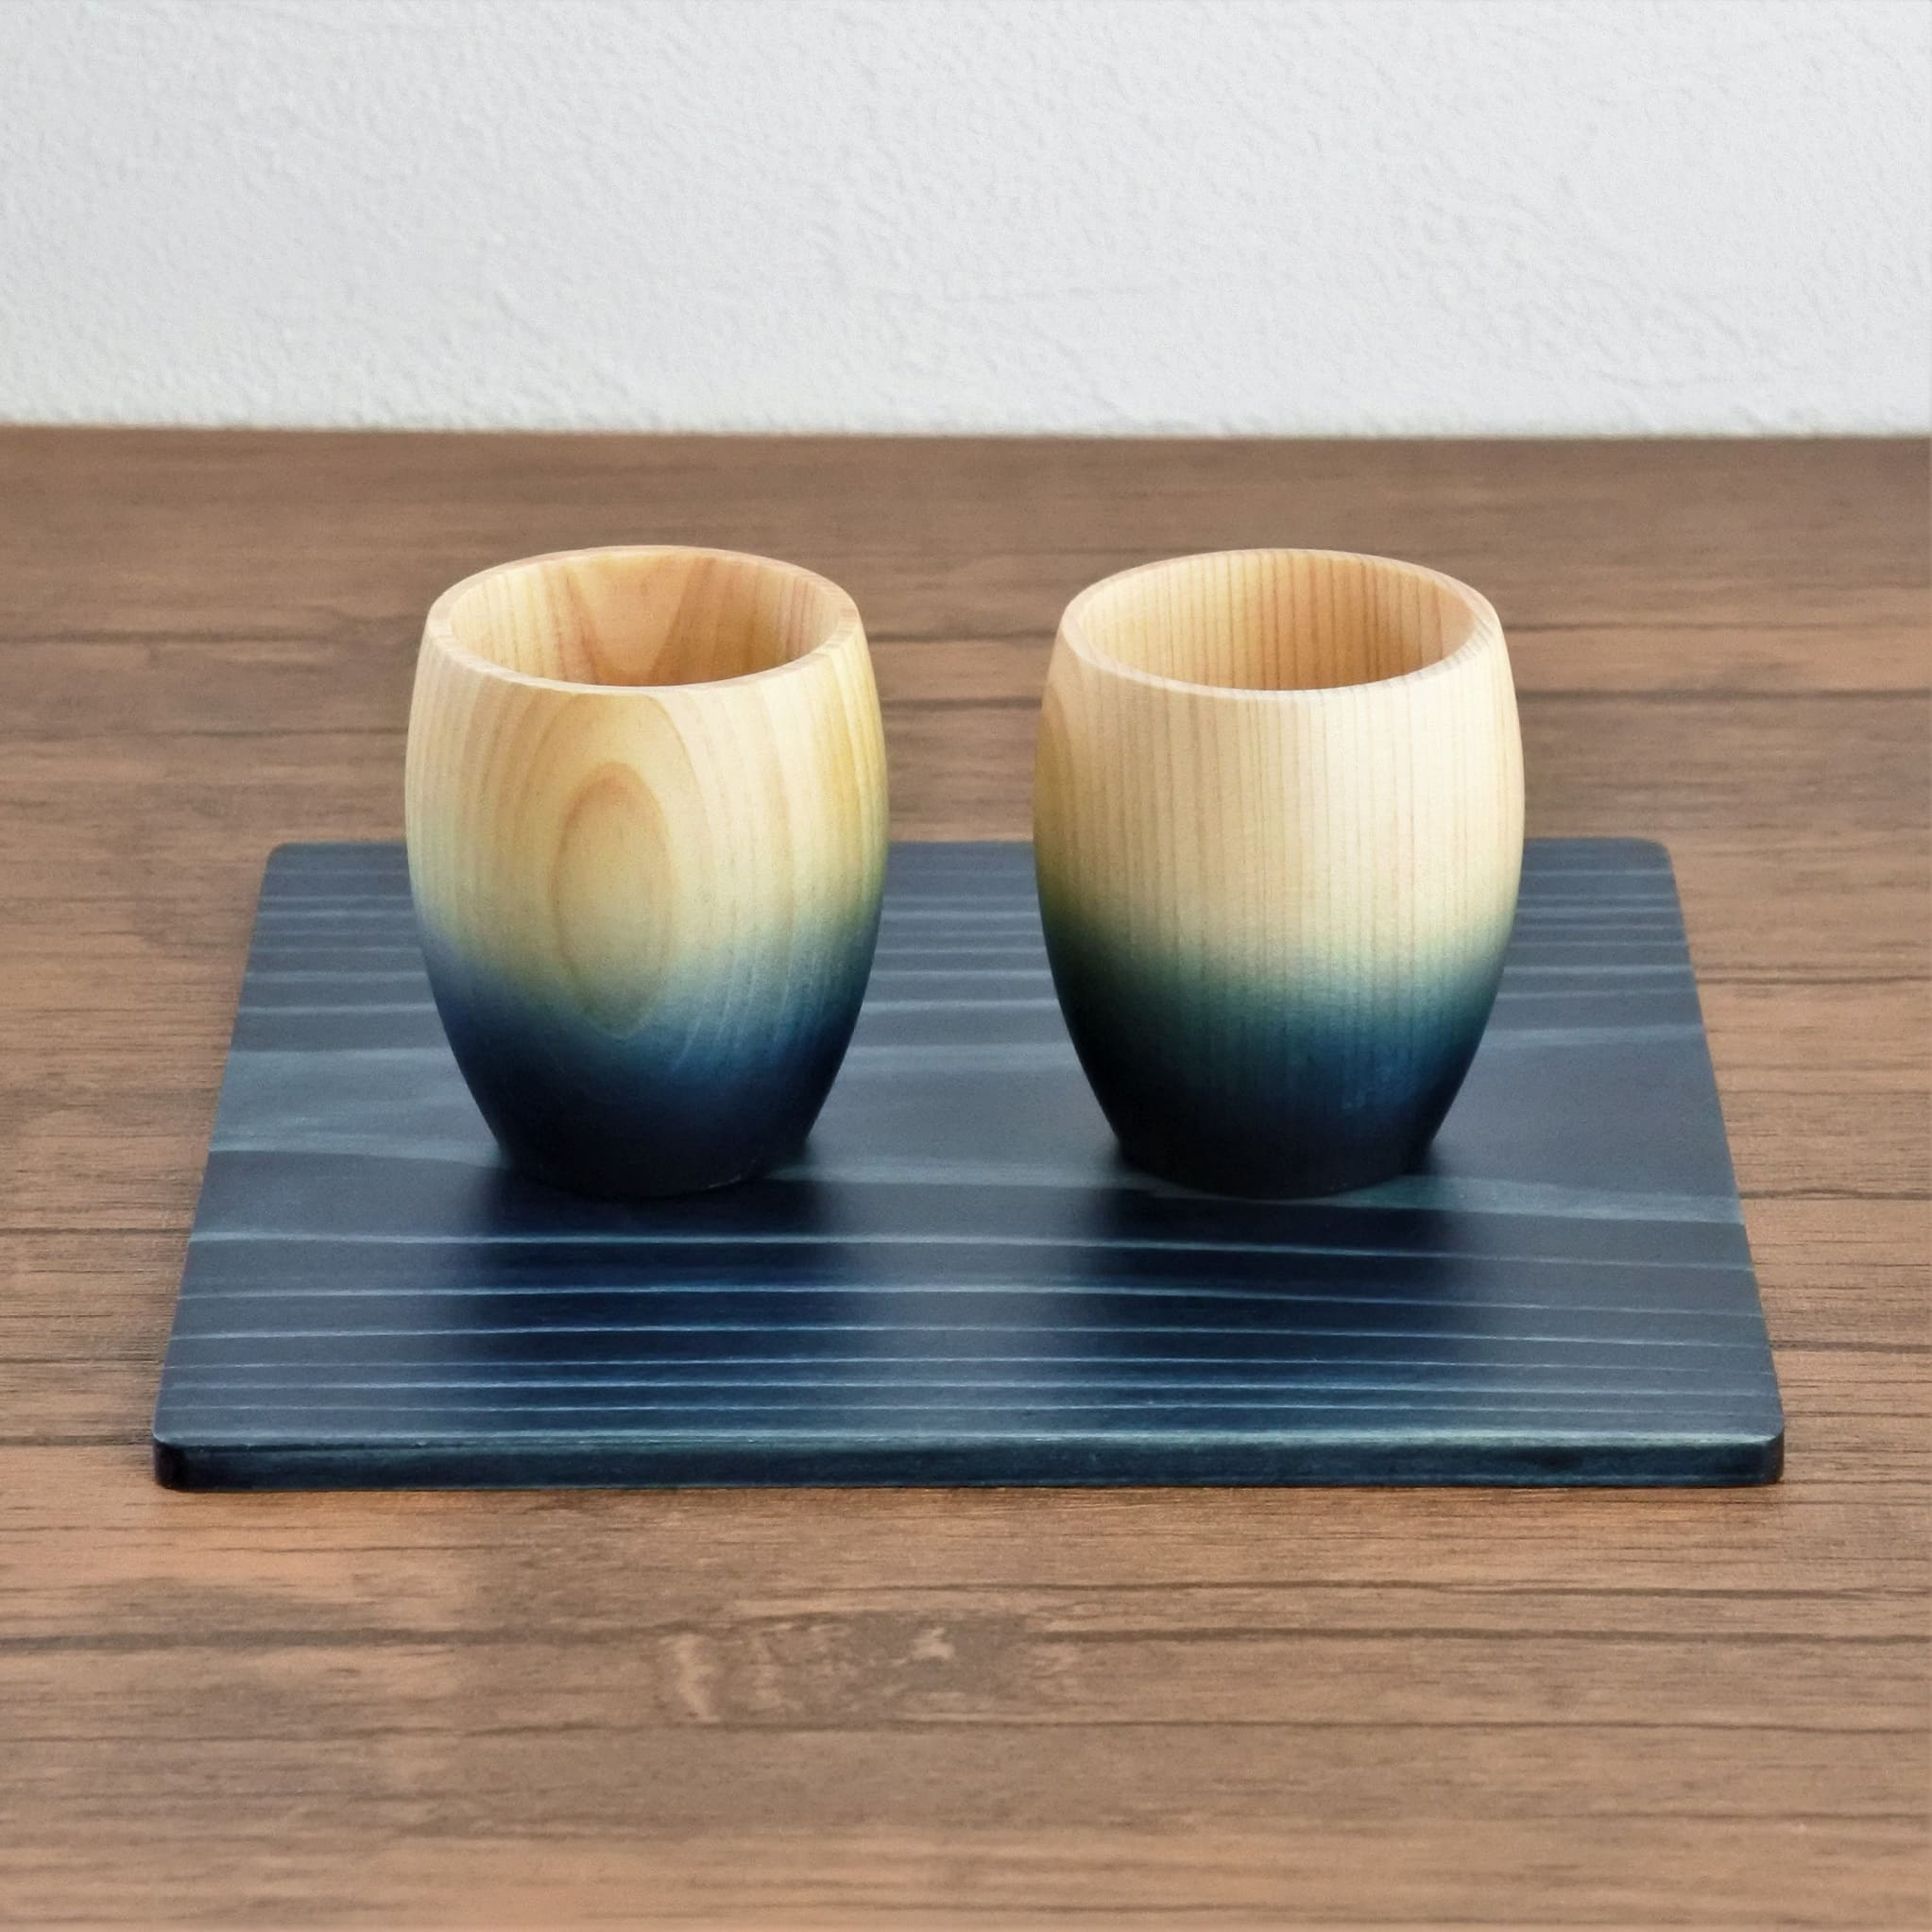 Aizome (Indigo) Wood Plate 150x150mm - 2pcs Set